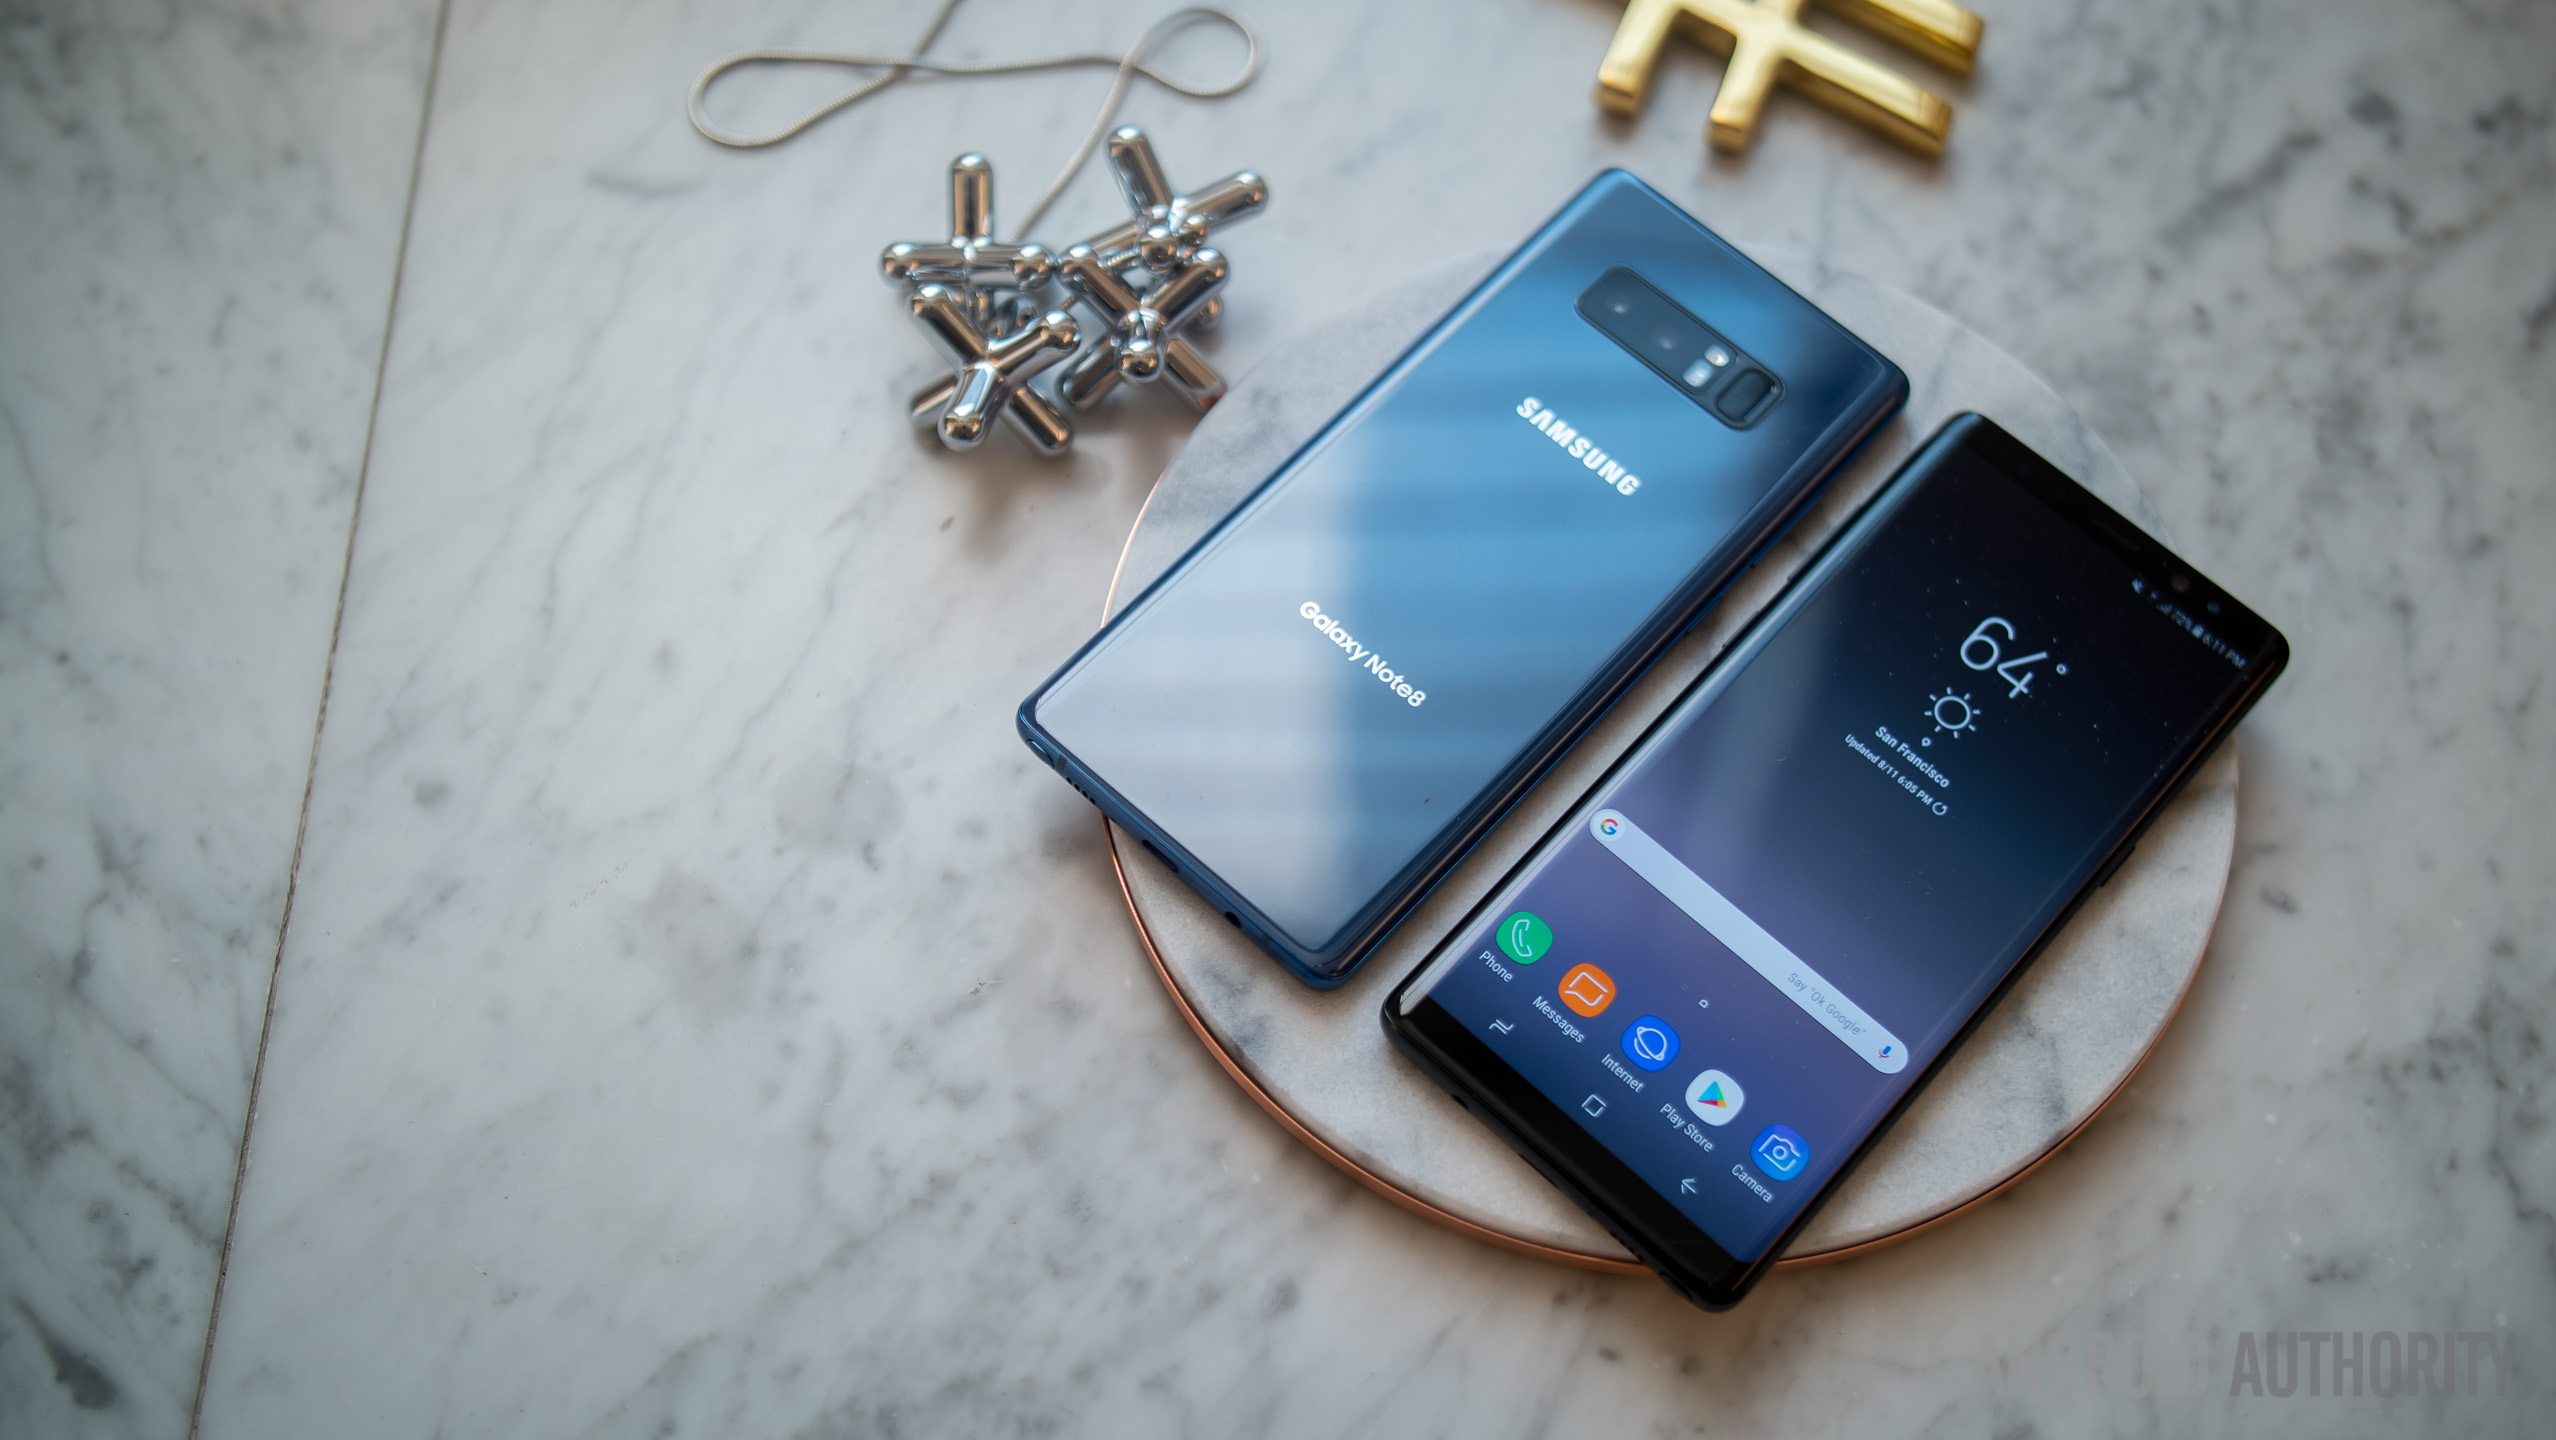 Samsung Galaxy Note 8 features